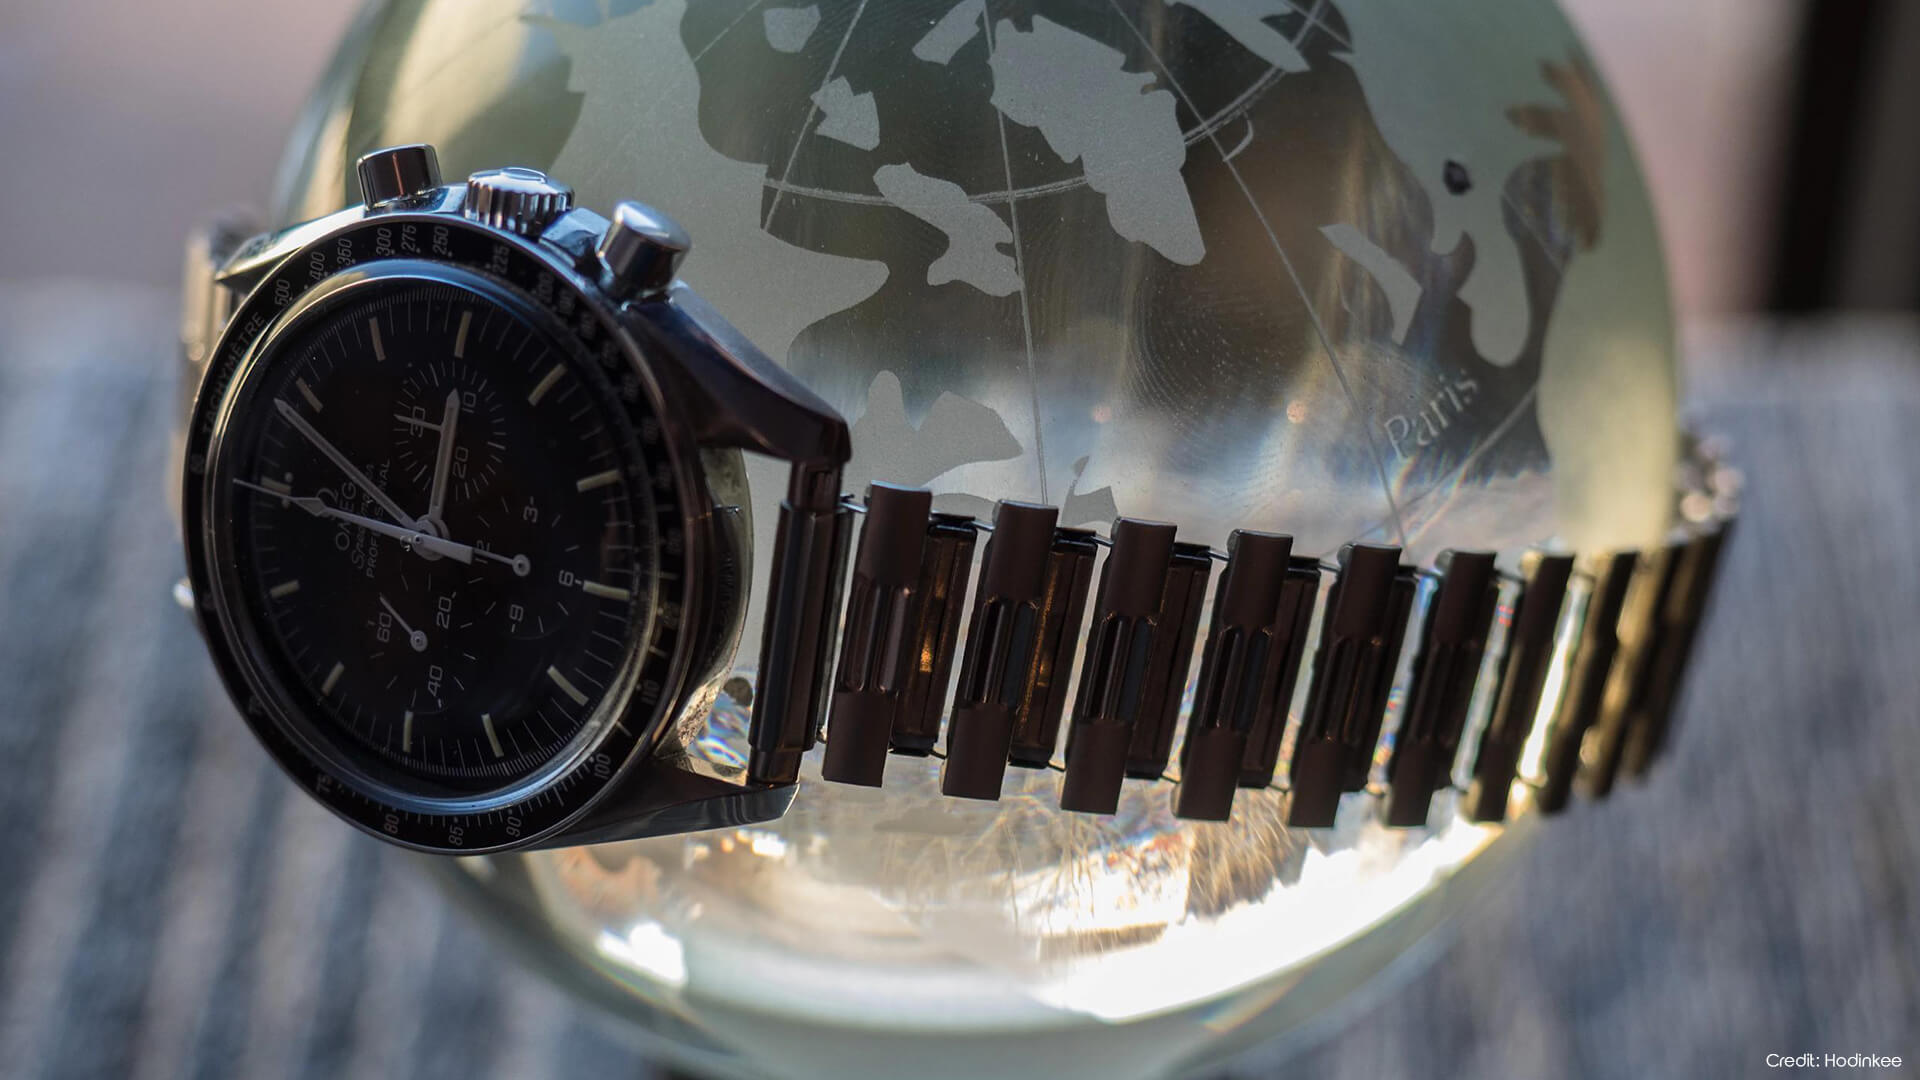 Watch 101: What is an Expansion Bracelet?